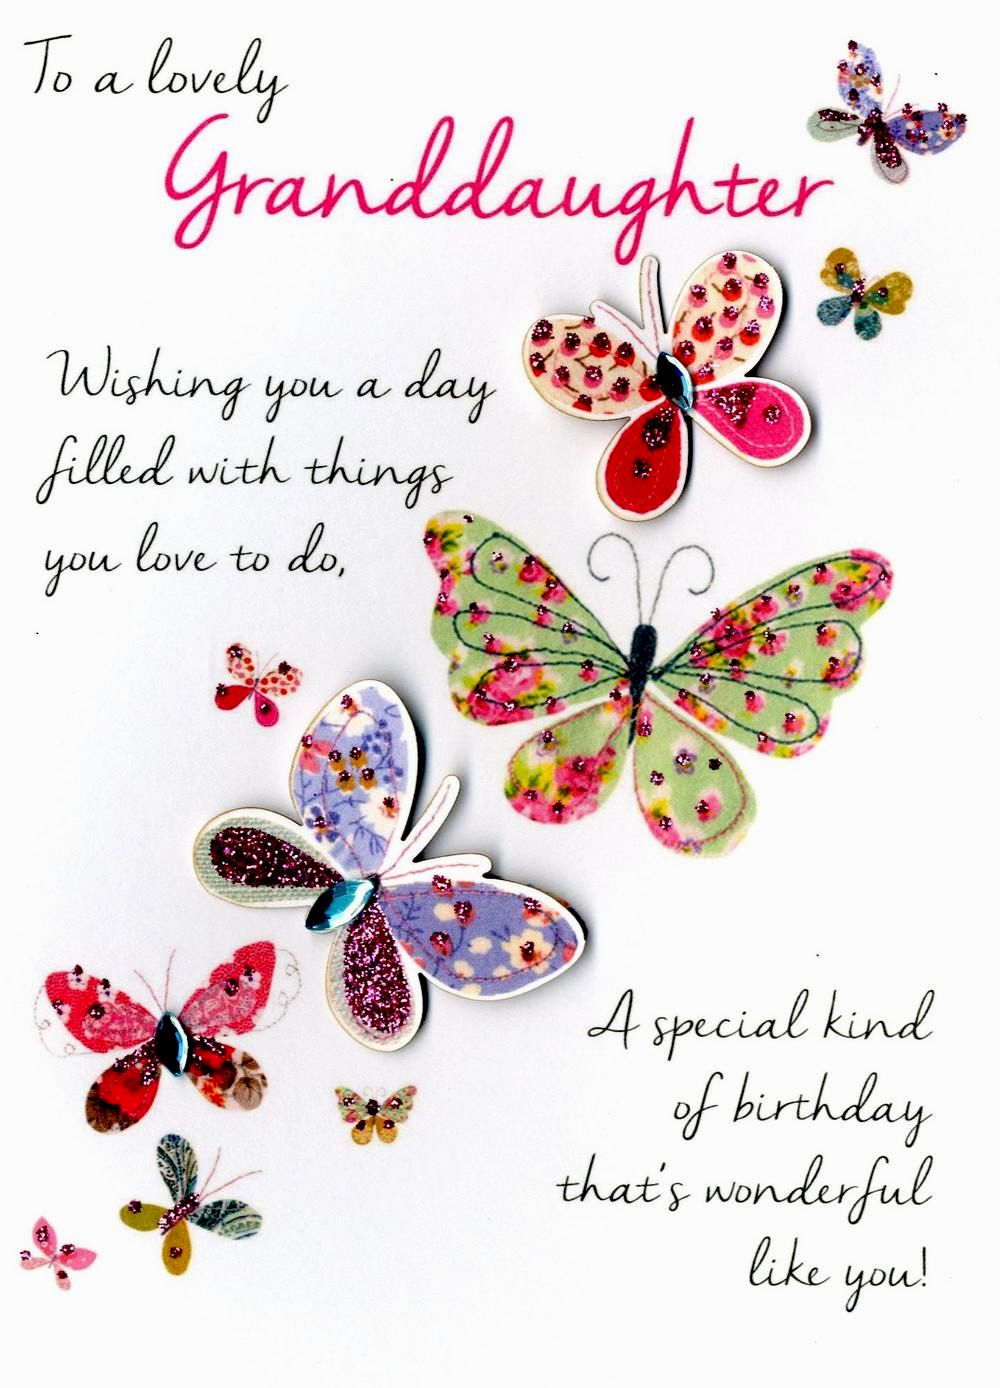 happy birthday granddaughter quotes ; modern-happy-birthday-grandson-quotes-wallpaper-best-birthday-happy-birthday-granddaughter-quotes